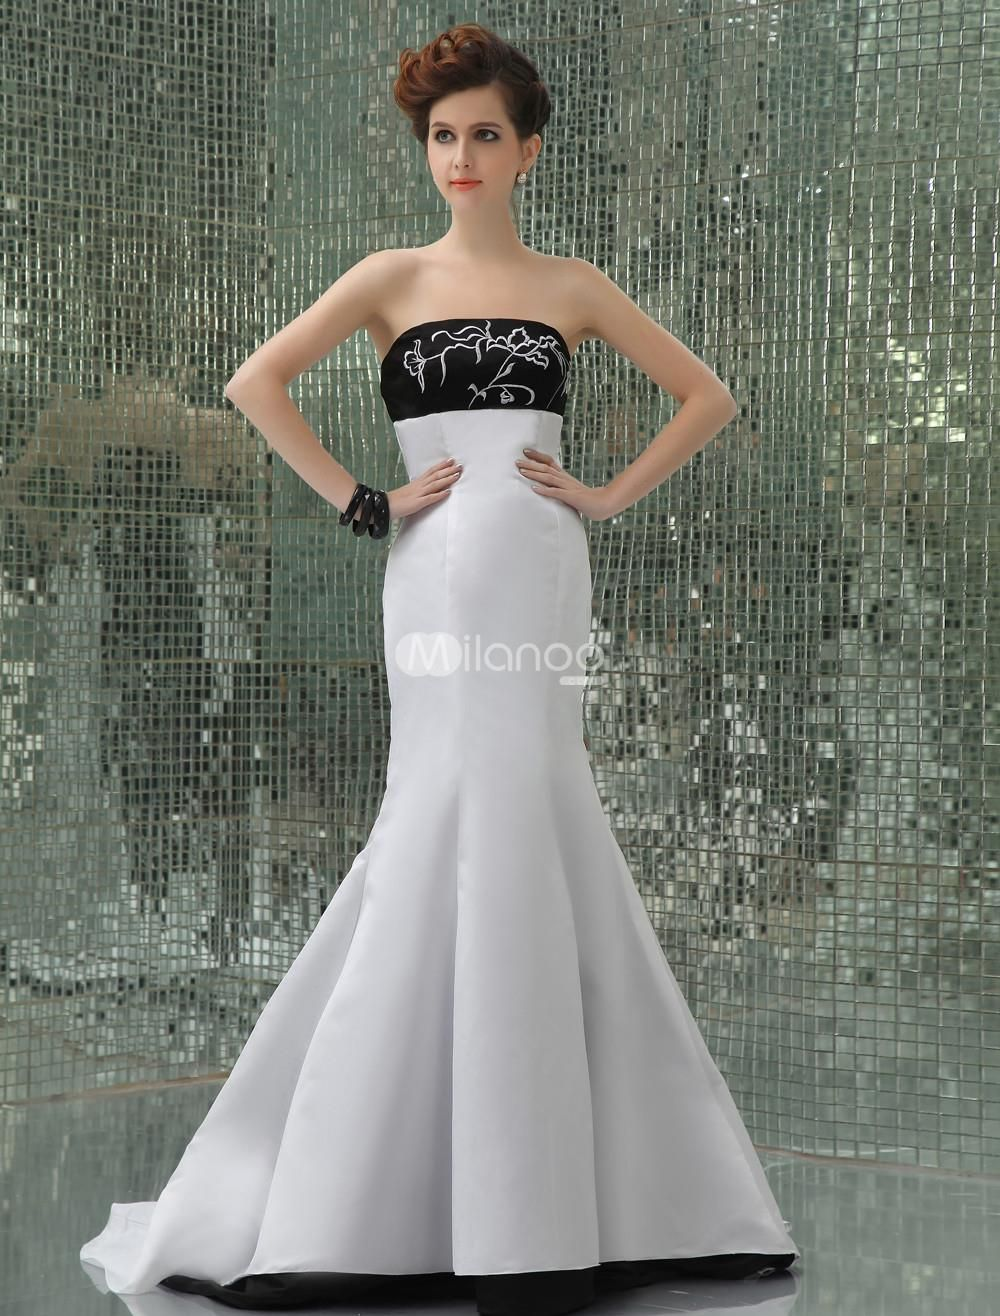 Silhouette wedding dresses simple bridal  White Satin Lace Embroider Strapless Mermaid Trumpet Prom Dress